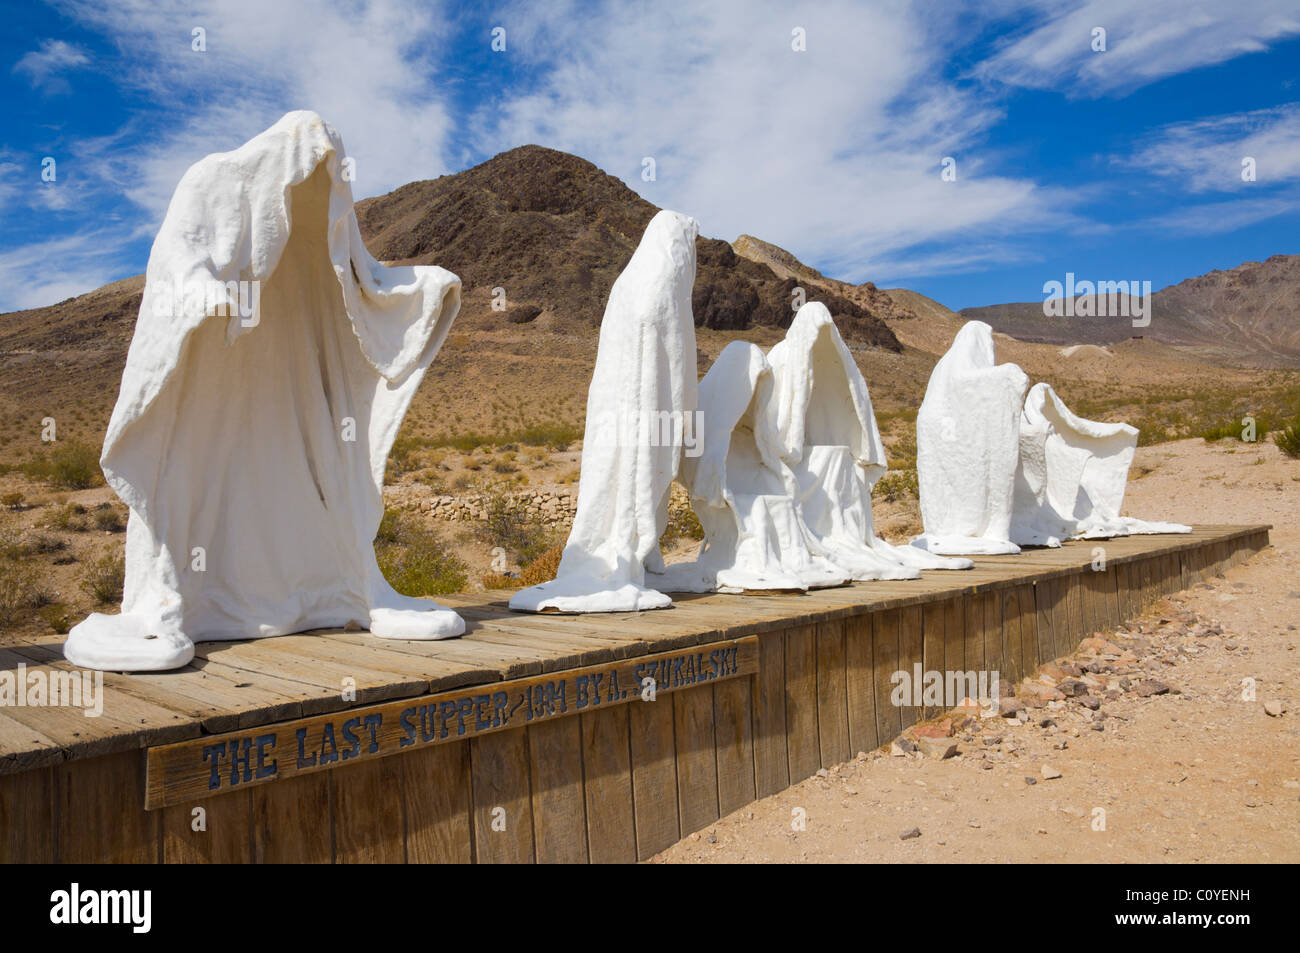 Ghosts sculptures by Belgian artists at Goldwell open air Museum near Rhyolite in the Armagosa desert near Beatty - Stock Image